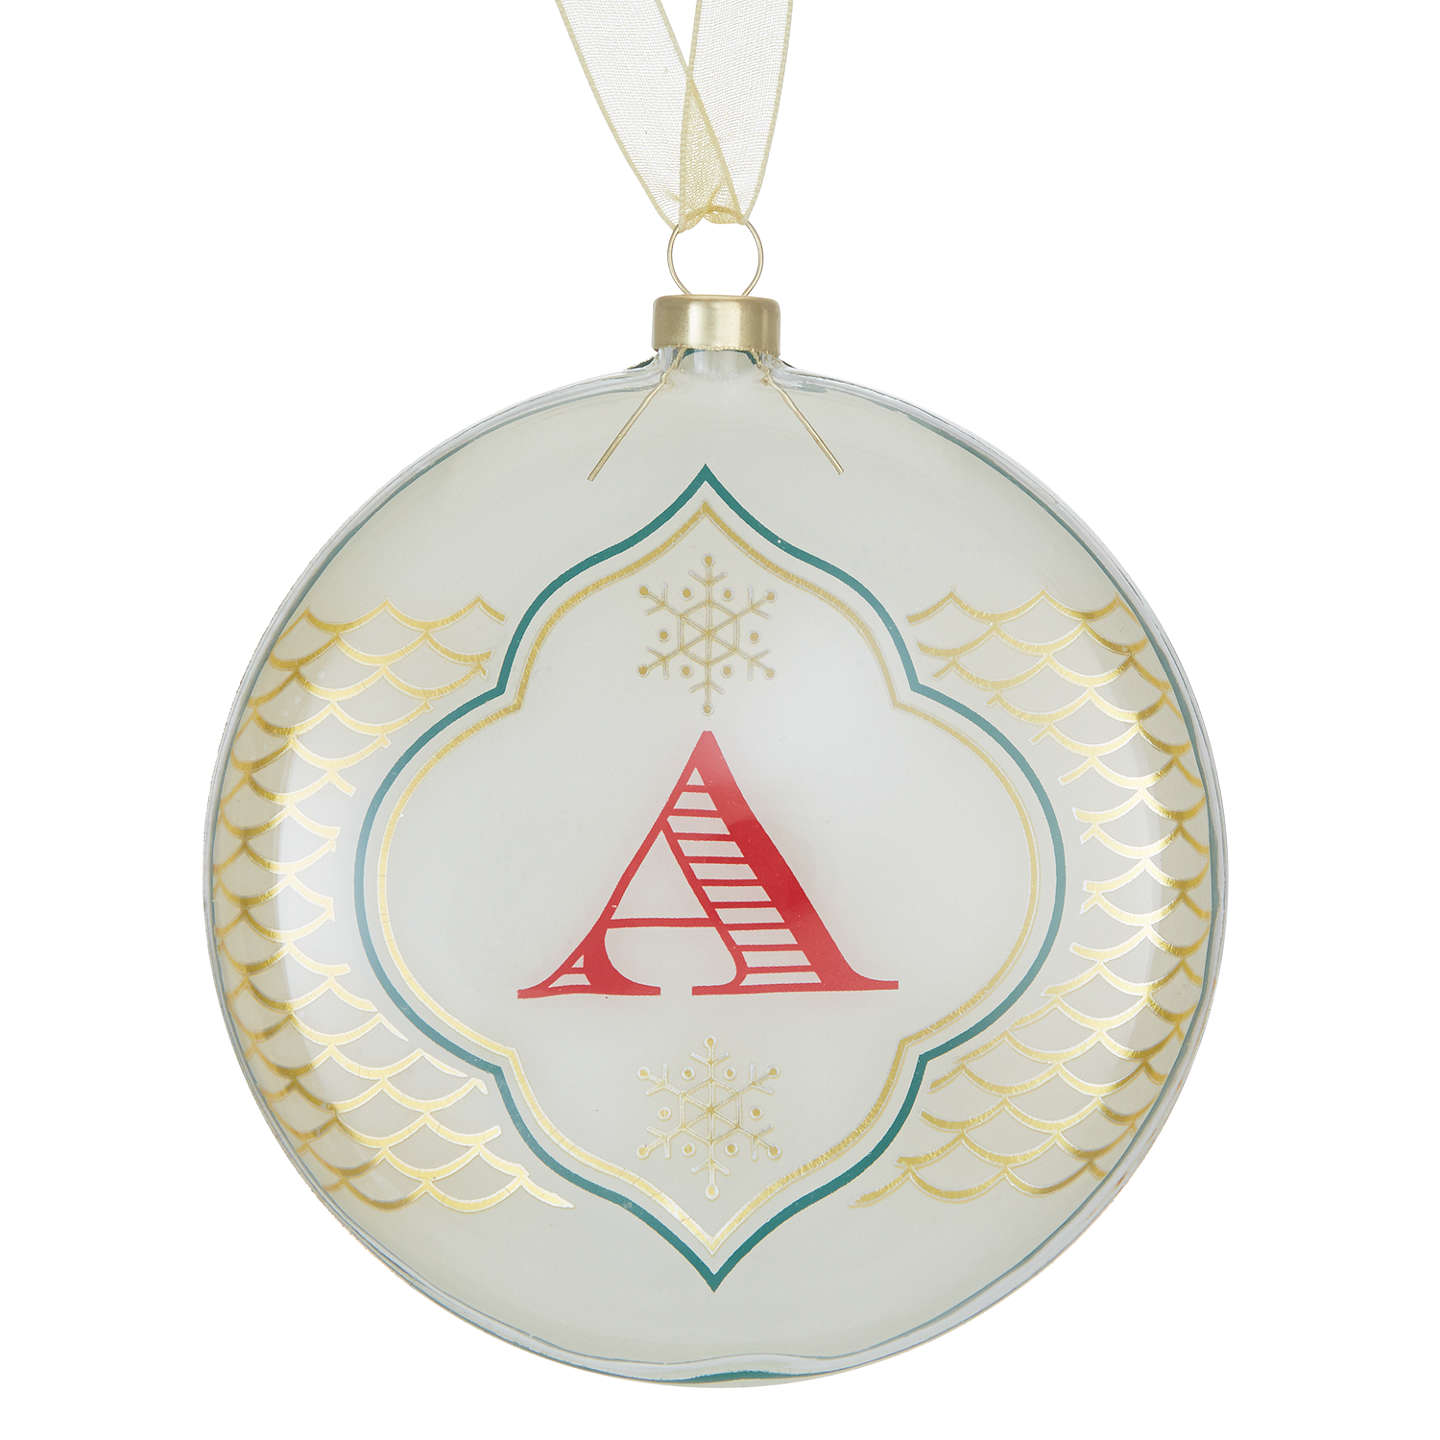 BuyJohn Lewis Monogram Bauble, A, Ivory & Gold Online at johnlewis.com